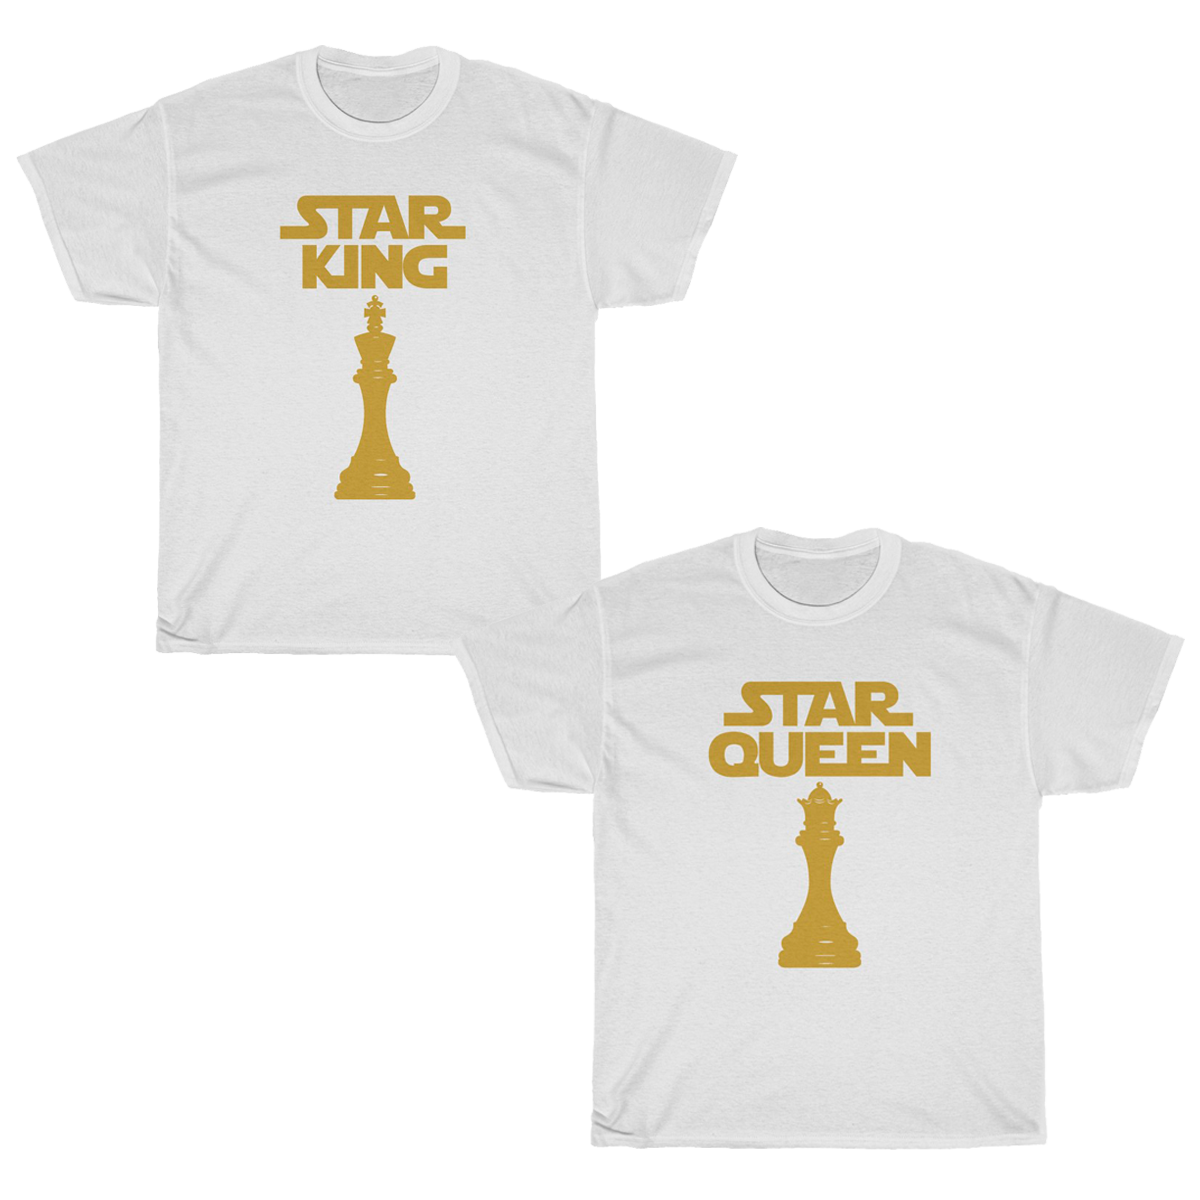 Chess Star Queen & King T-Shirt Set